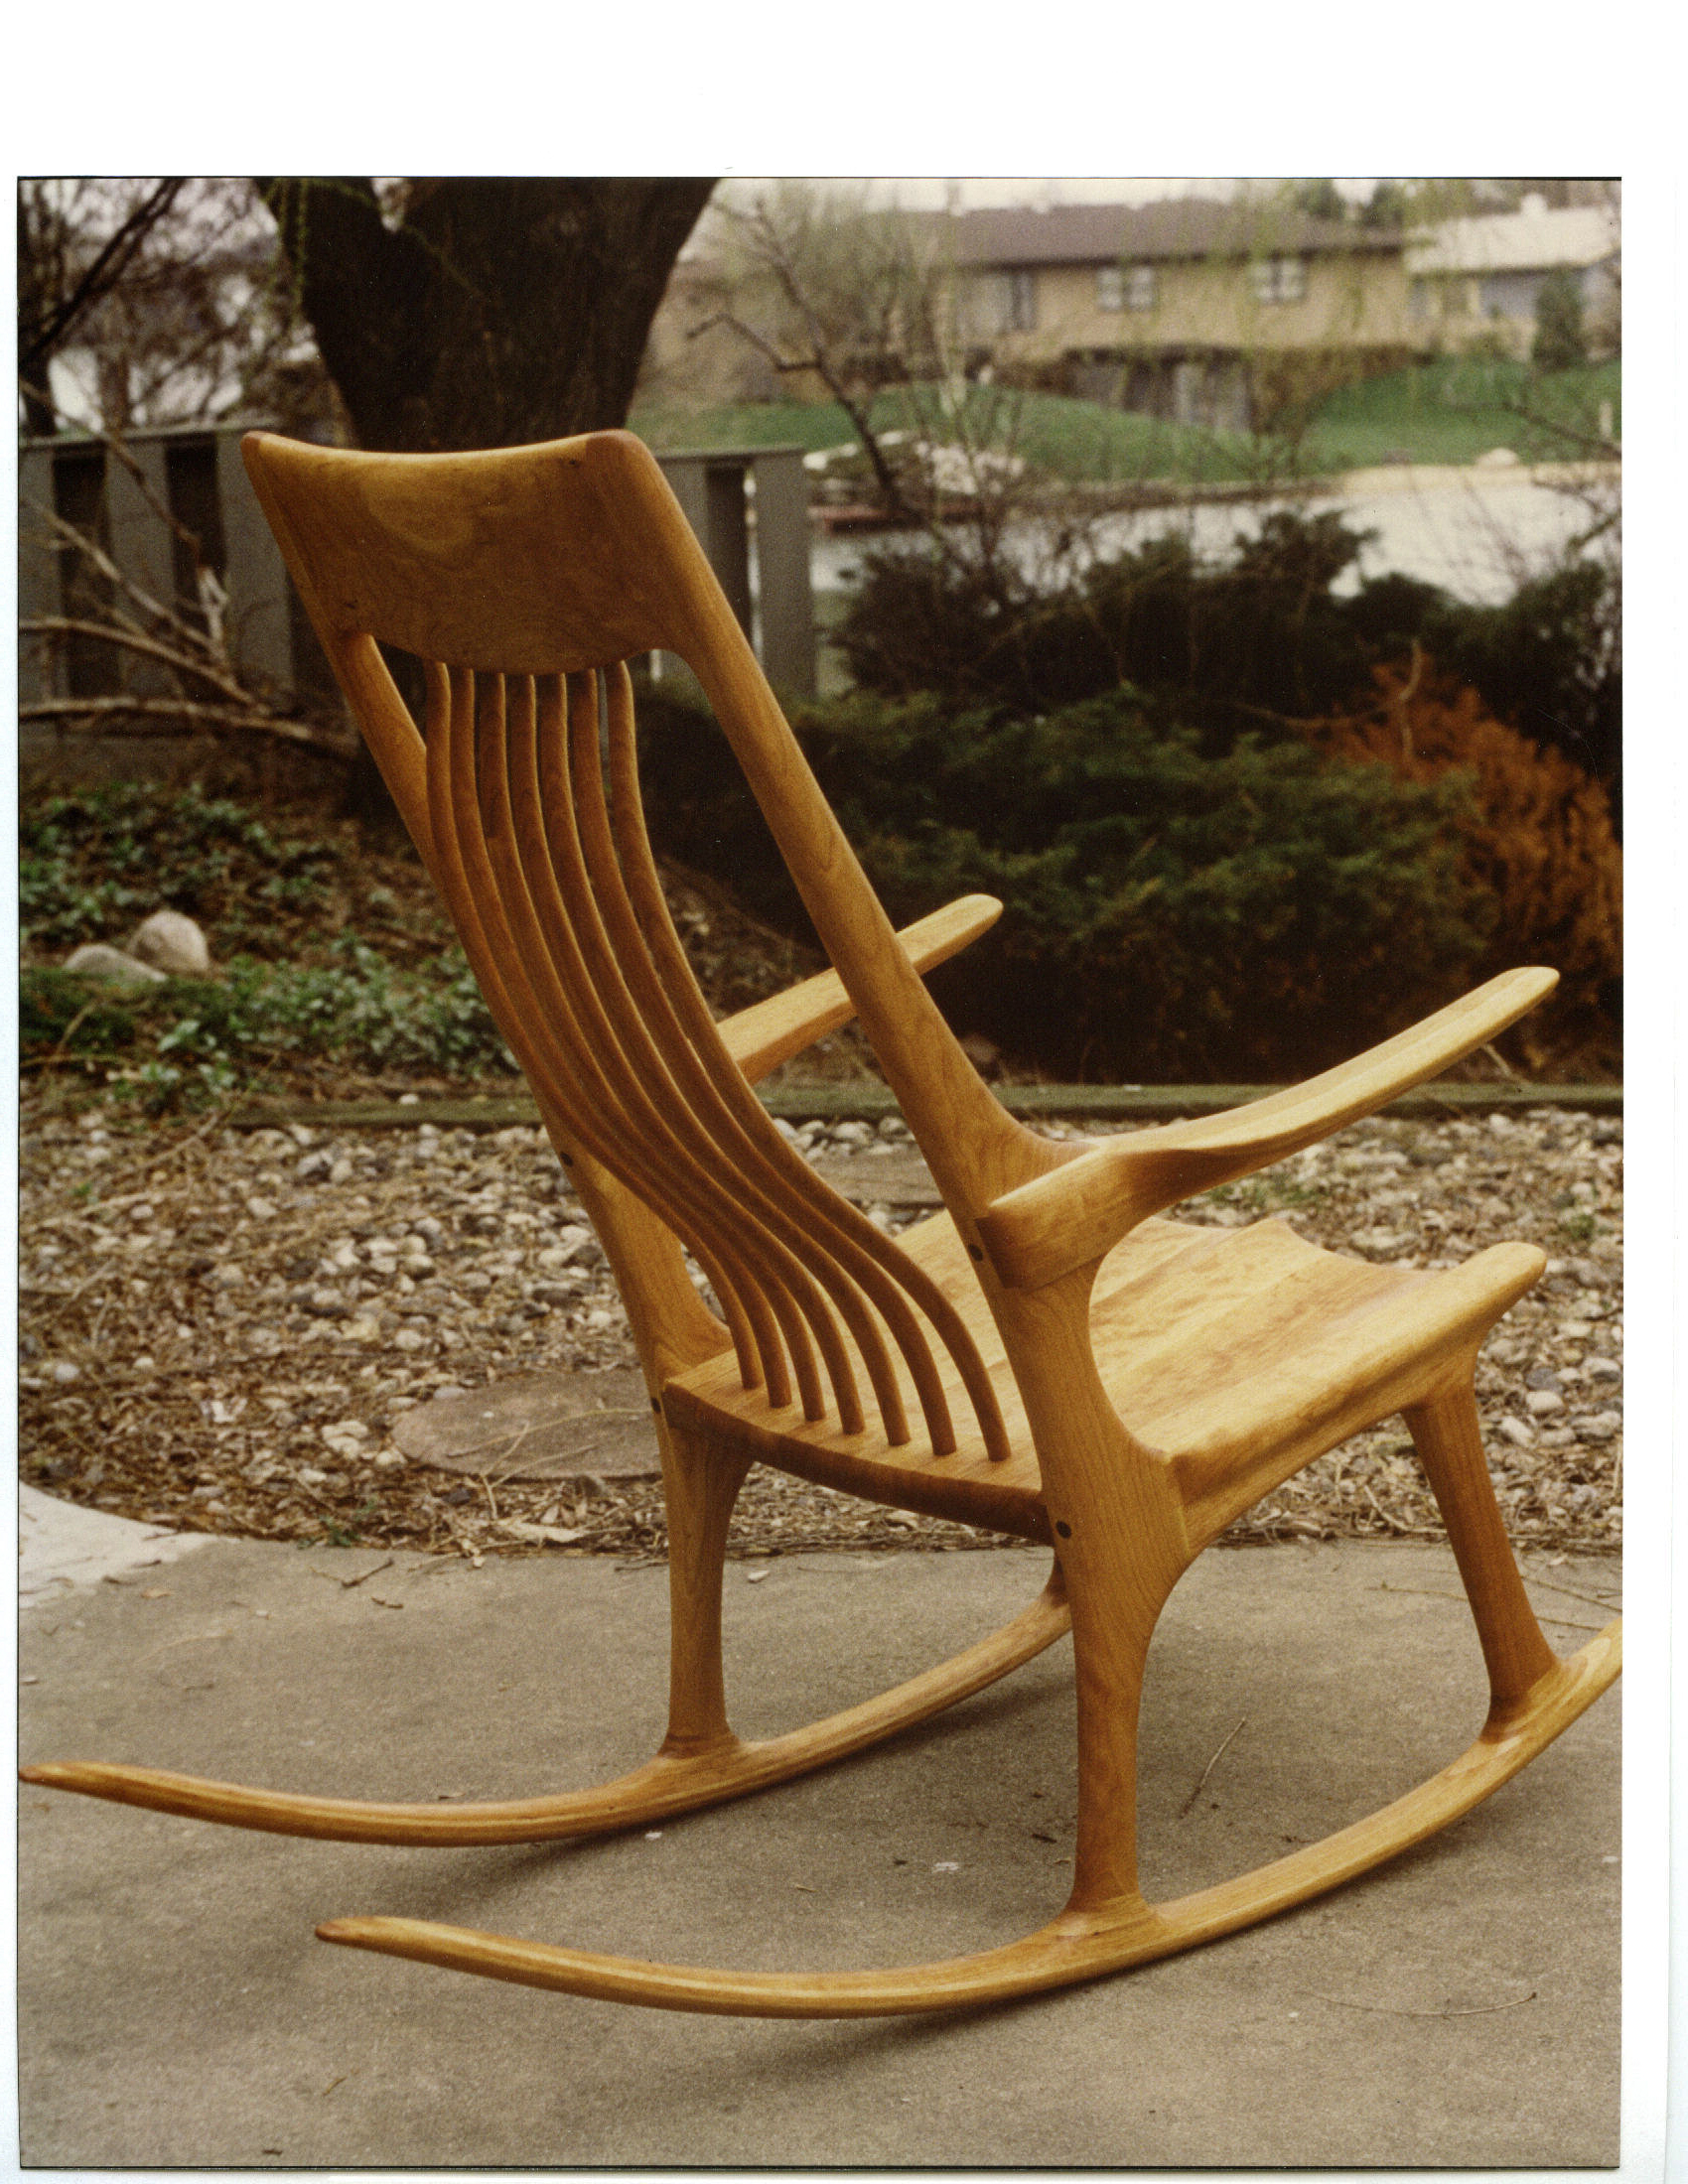 Rick Brewer Custom Cabinets/ Handmade Rocking Chairs And Furniture